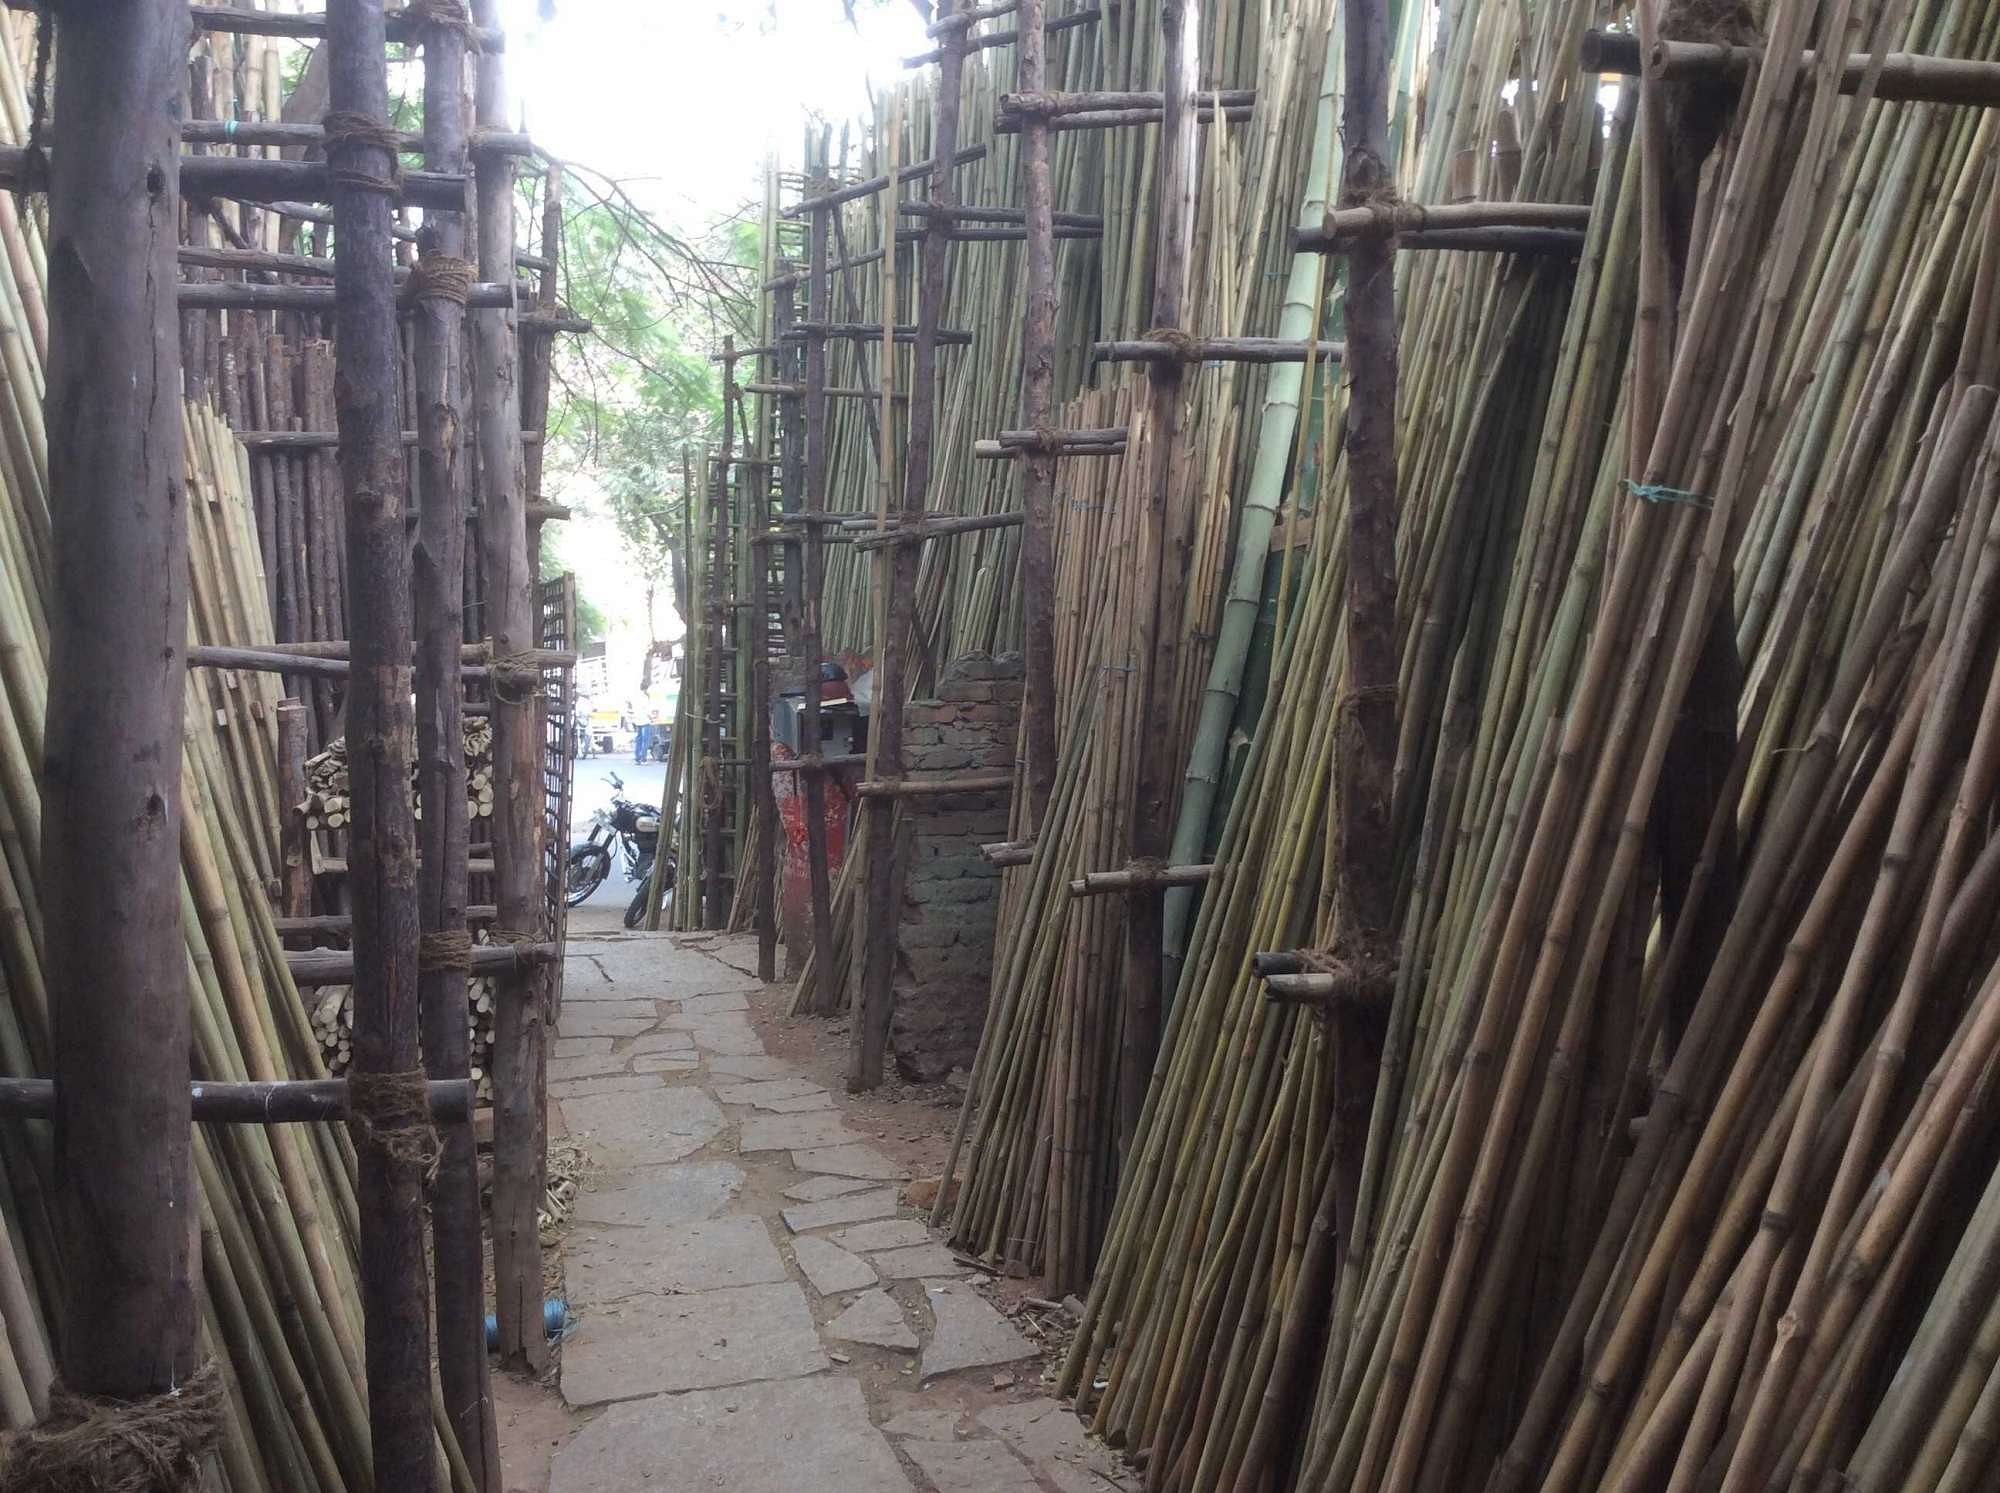 Bamboo Bazaar, Bengaluru. (Source: Just Dial)